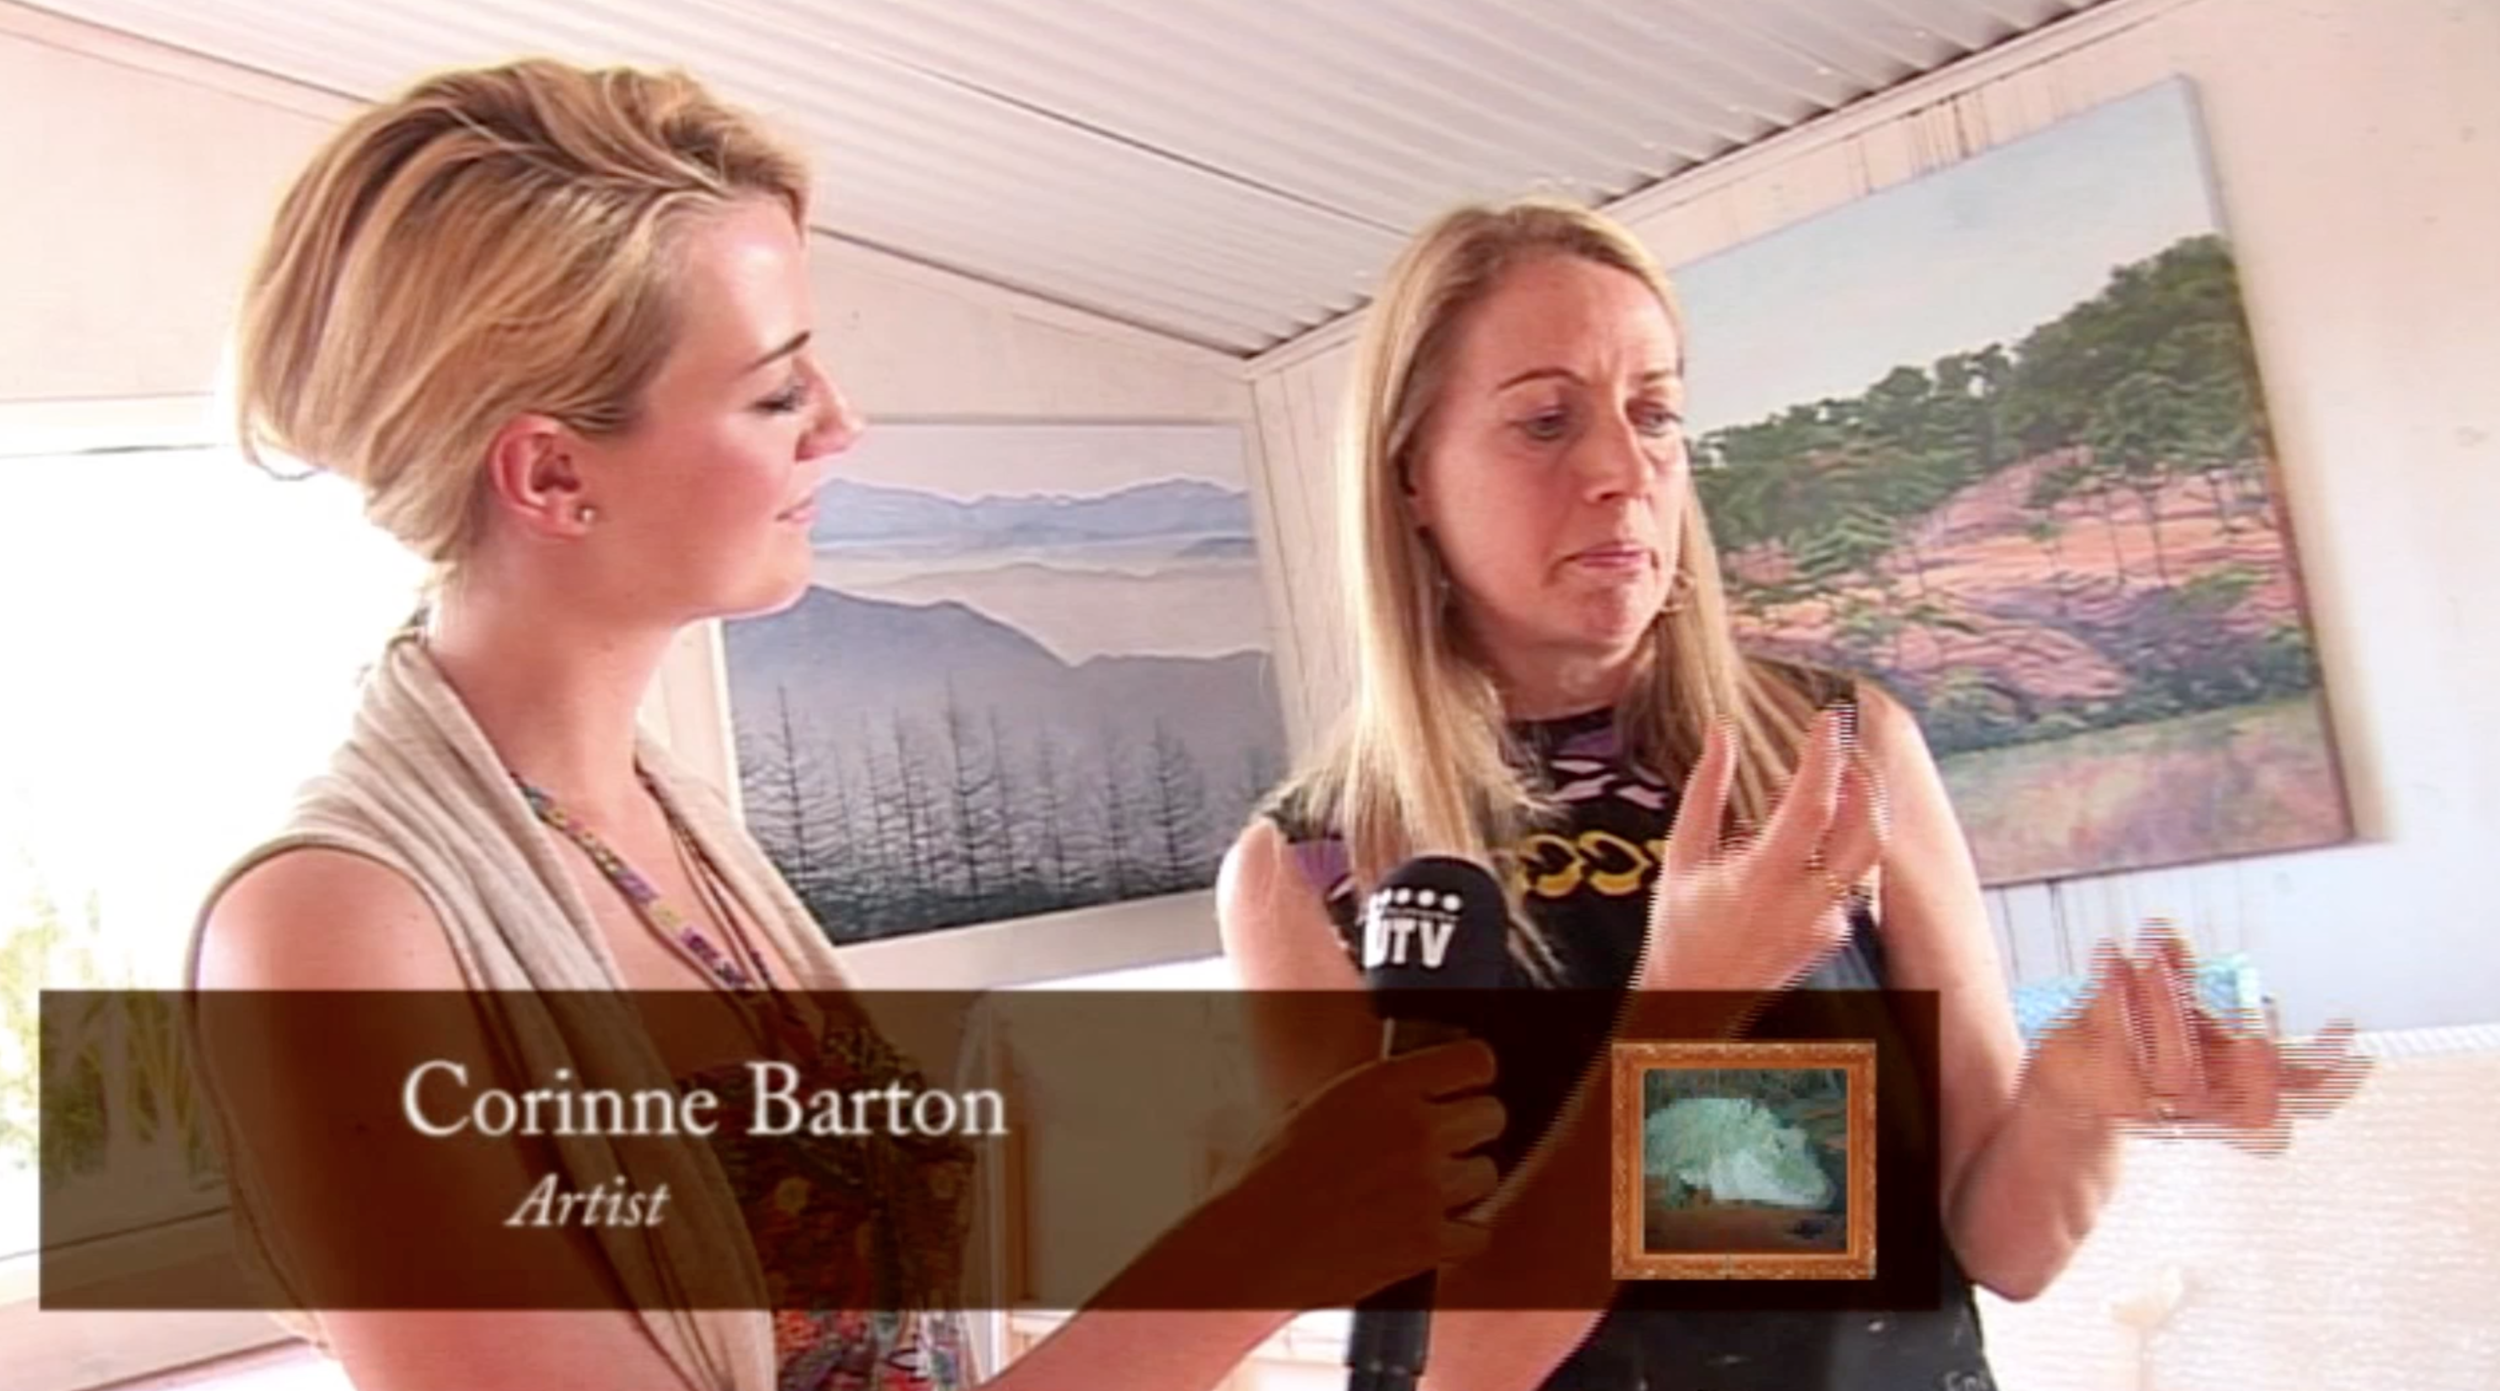 An Interview with corinne barton - See Corinne's Full Interview on TV series Gallery Watch